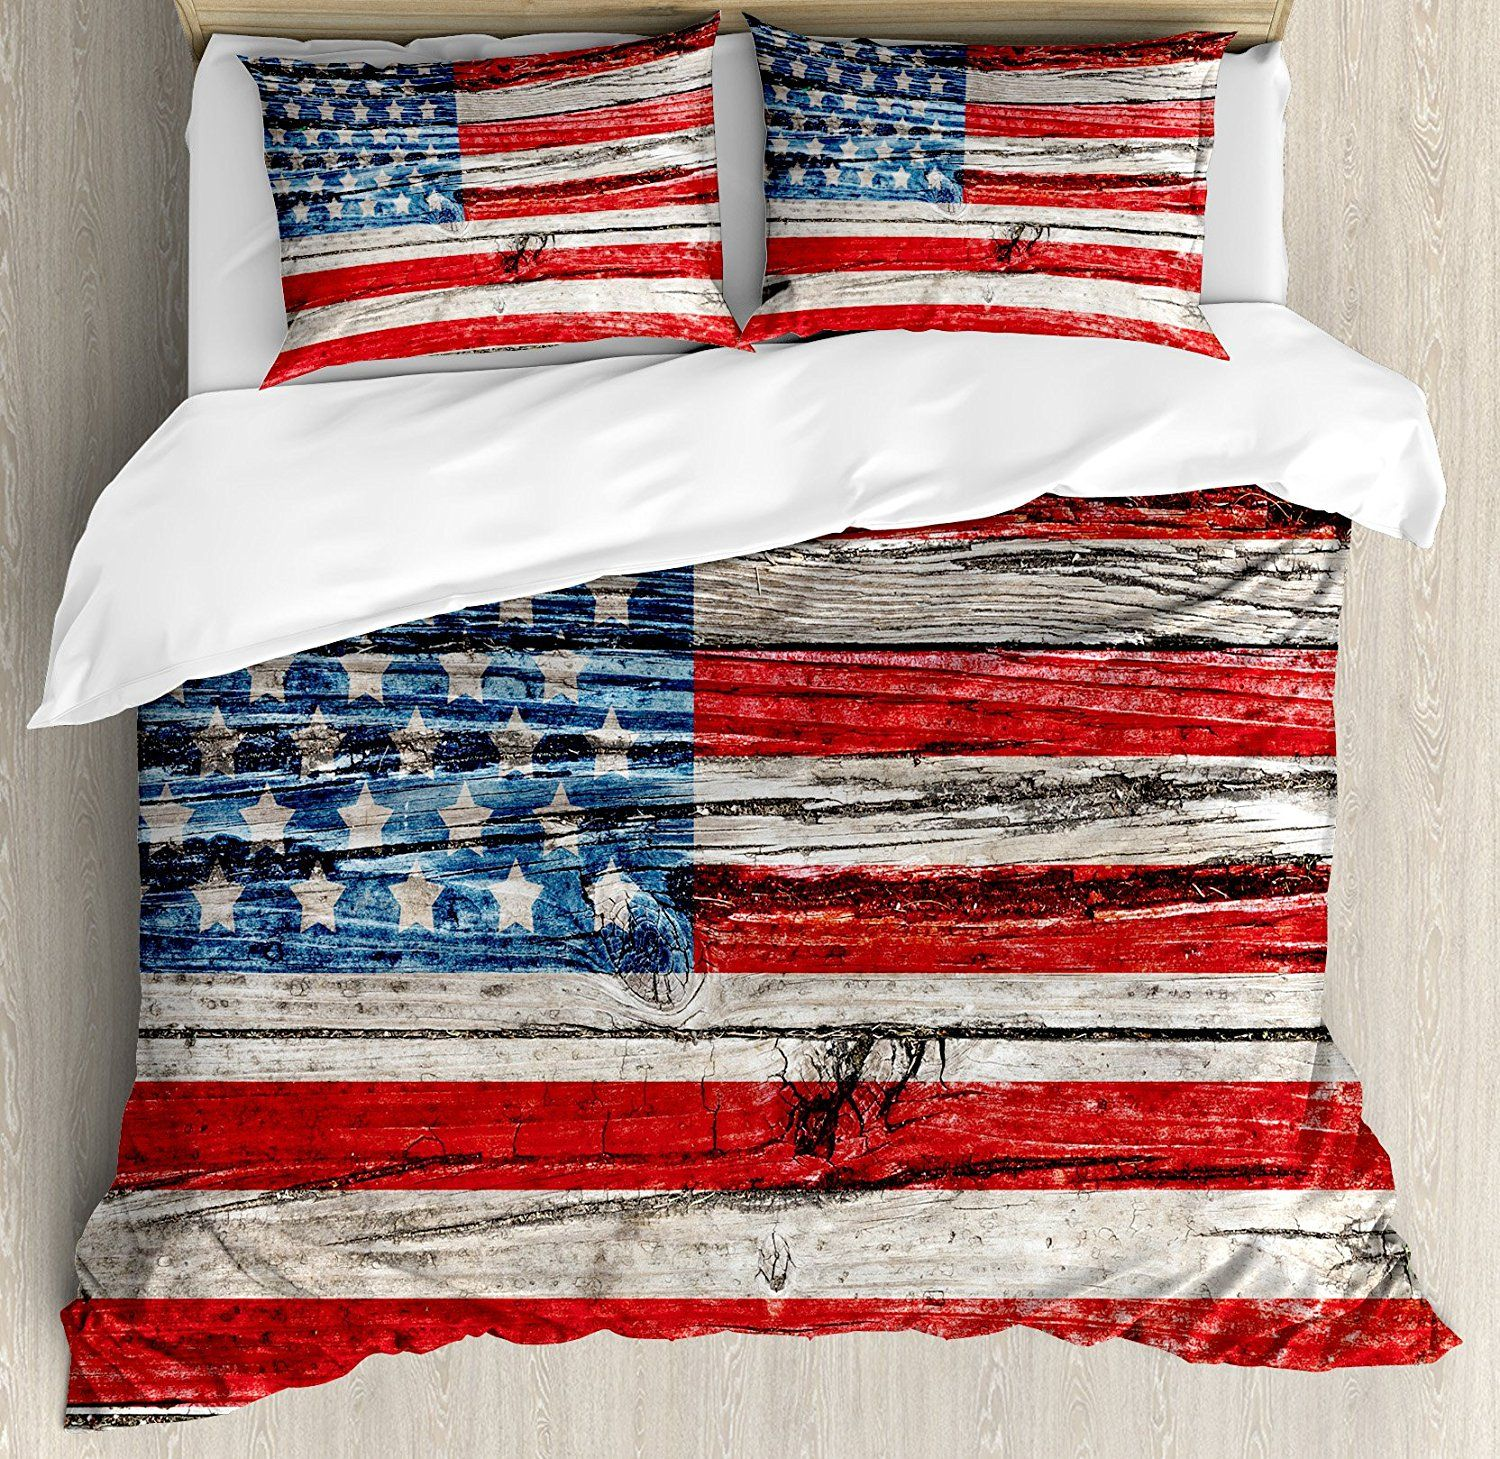 Rustic American USA Flag Duvet Cover Set Queen Size Fourth of July Independence Day Painted Wooden panel Wall